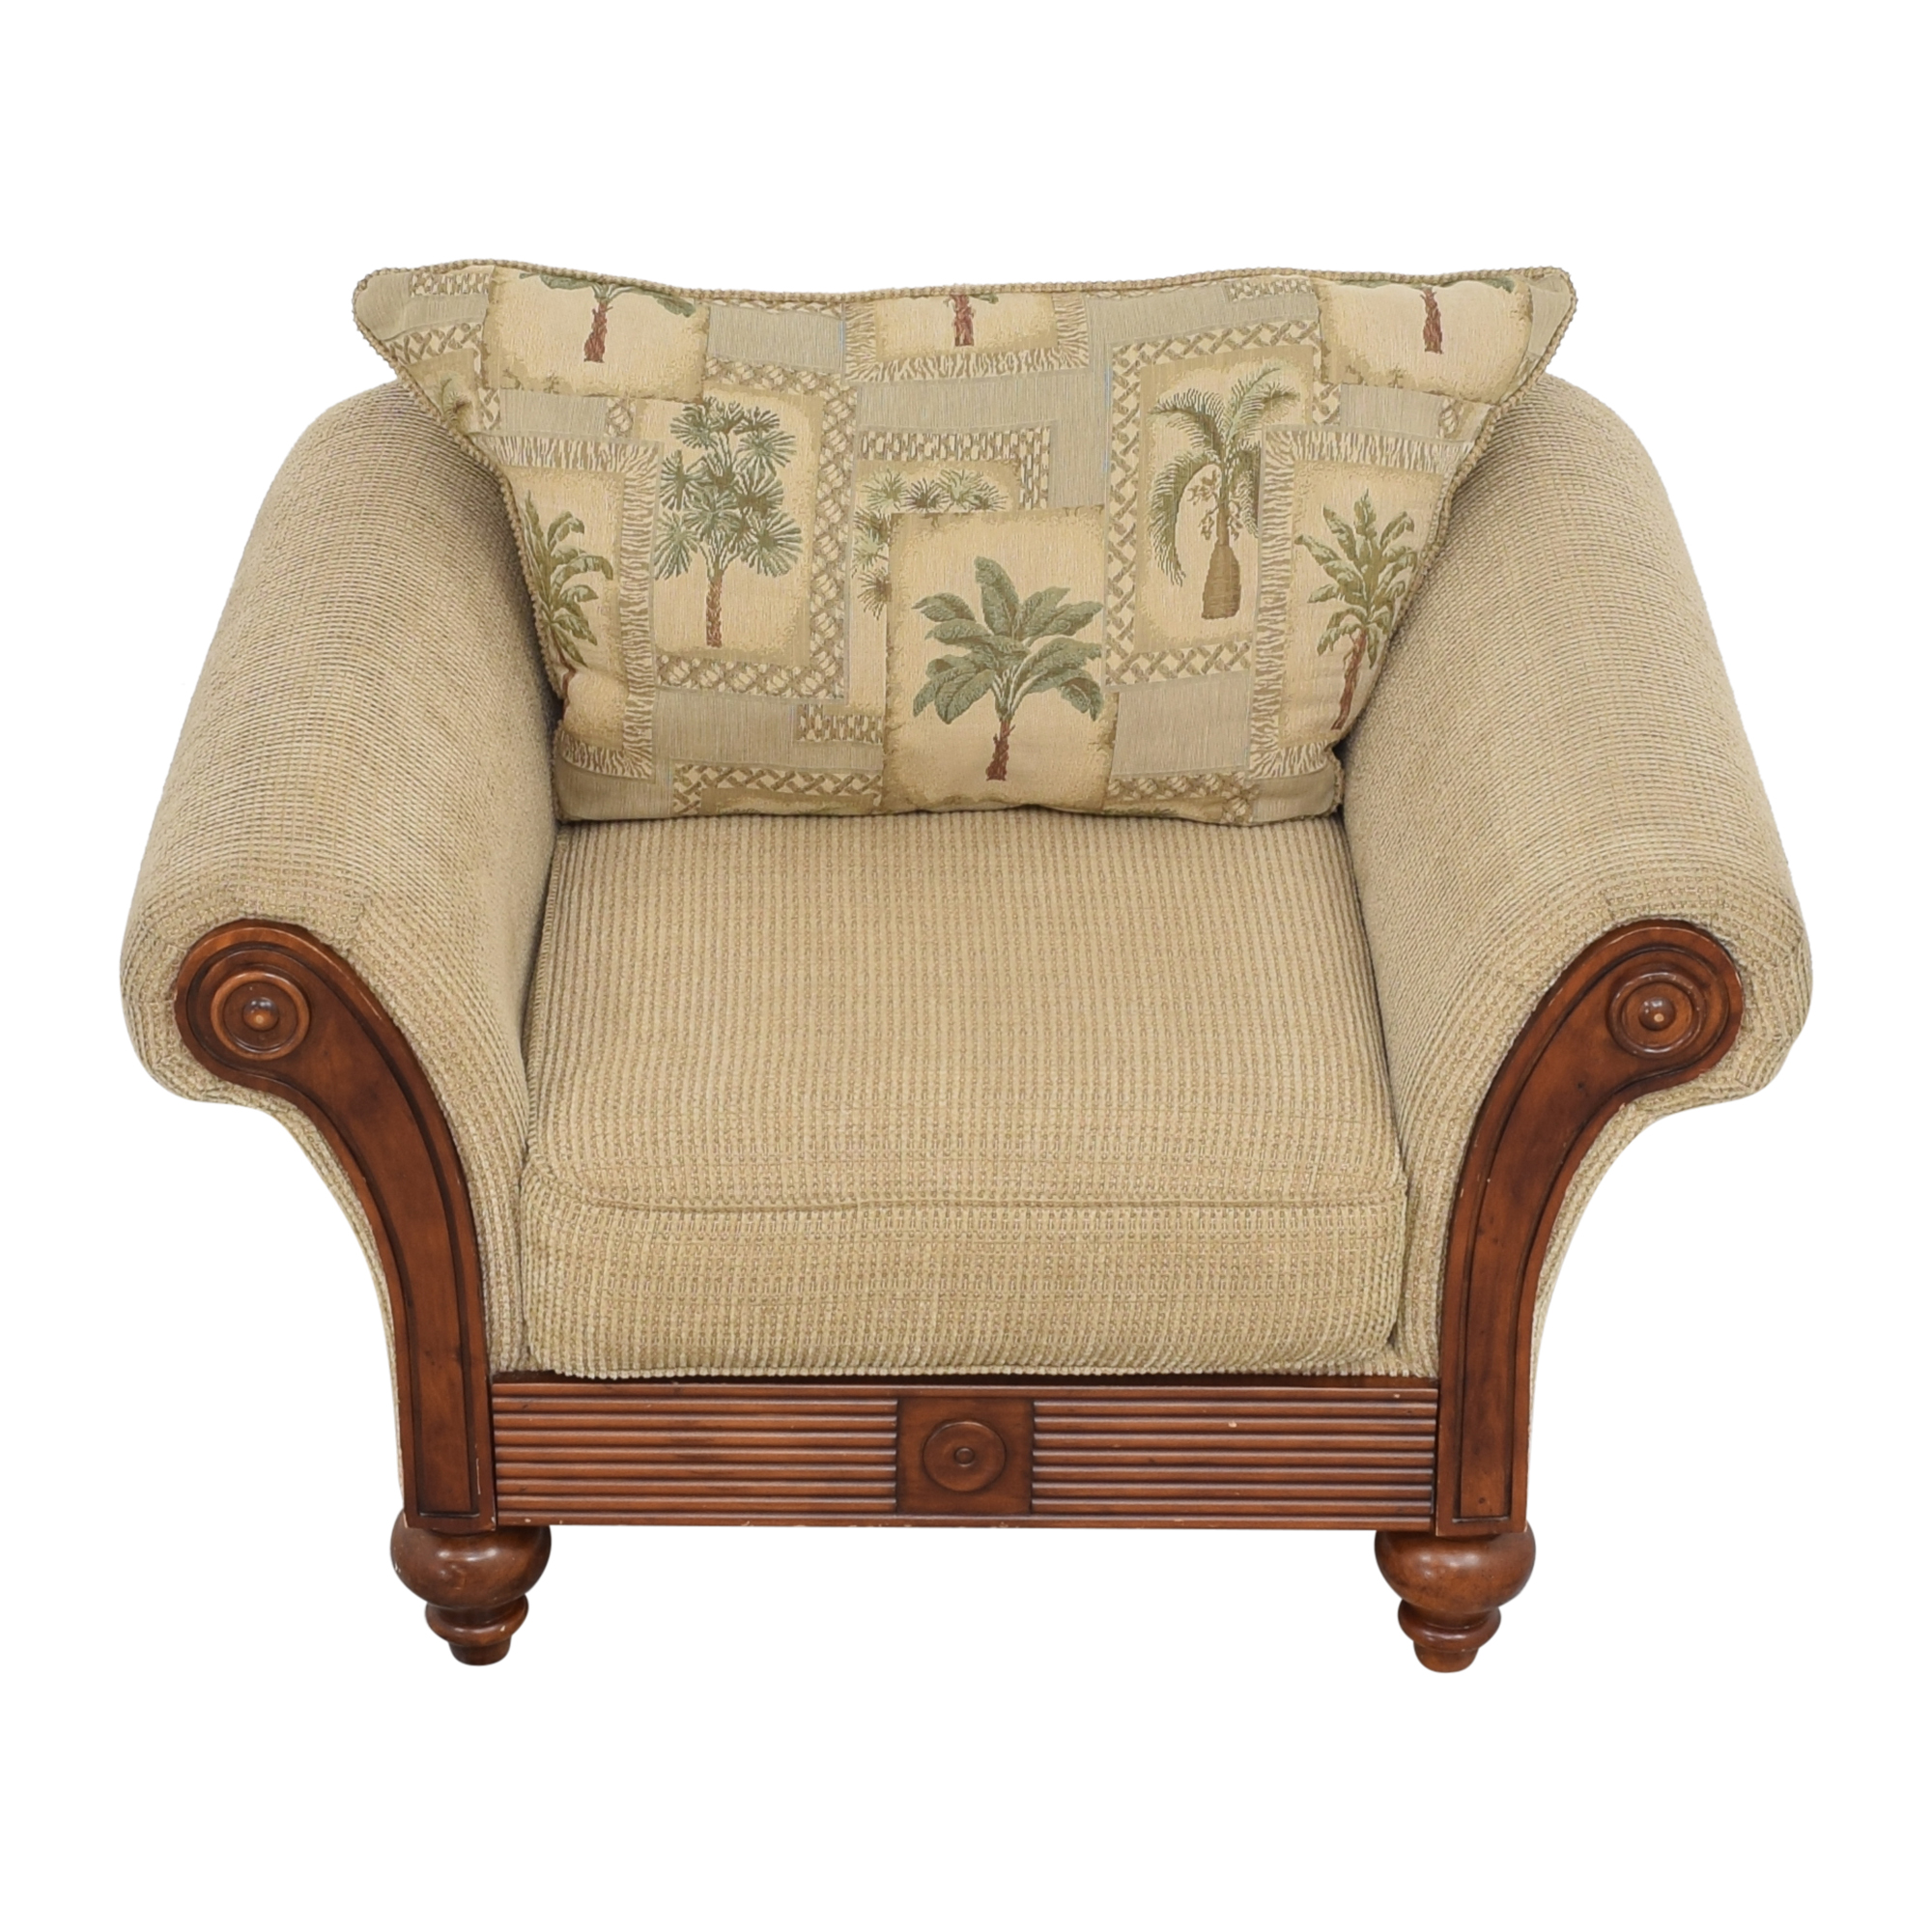 Klaussner Klaussner Club Chair second hand